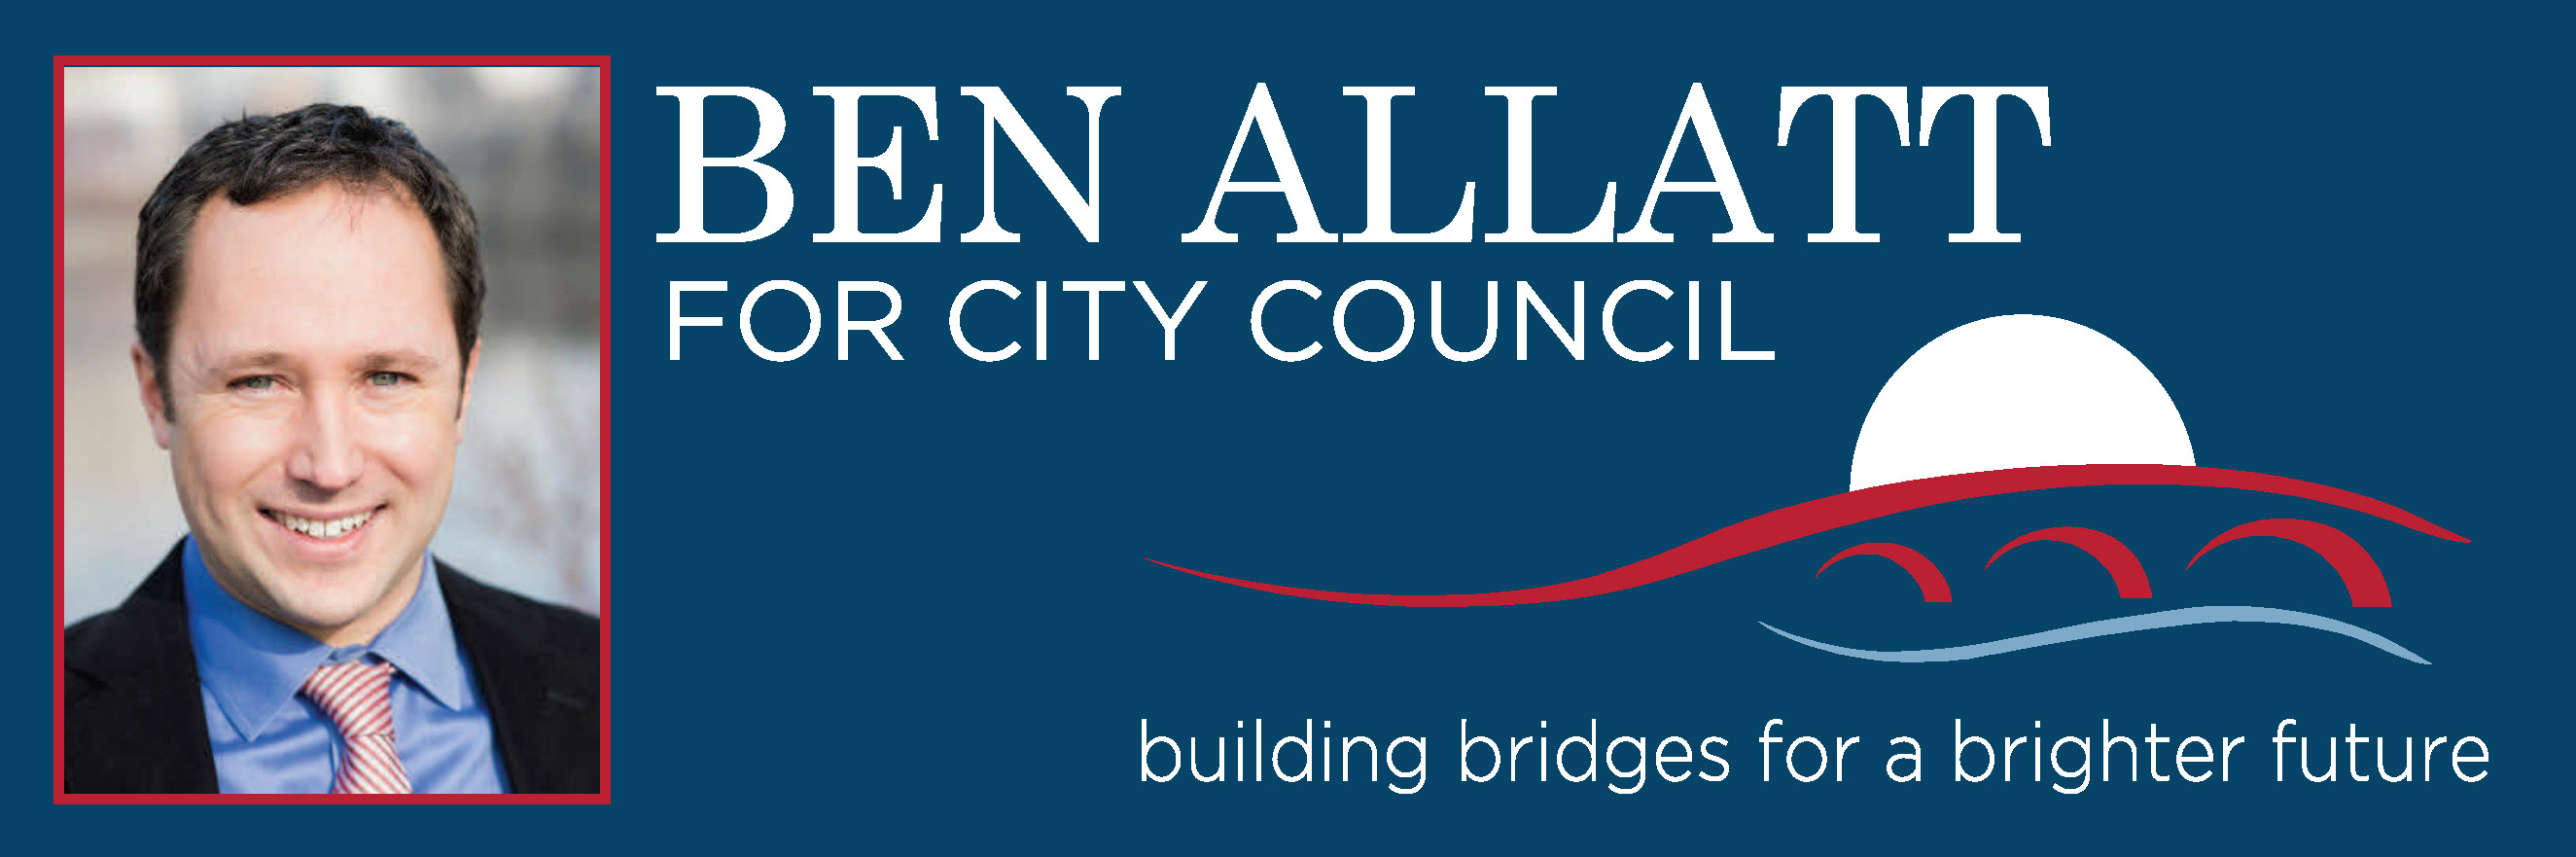 Ben Allatt for City Council